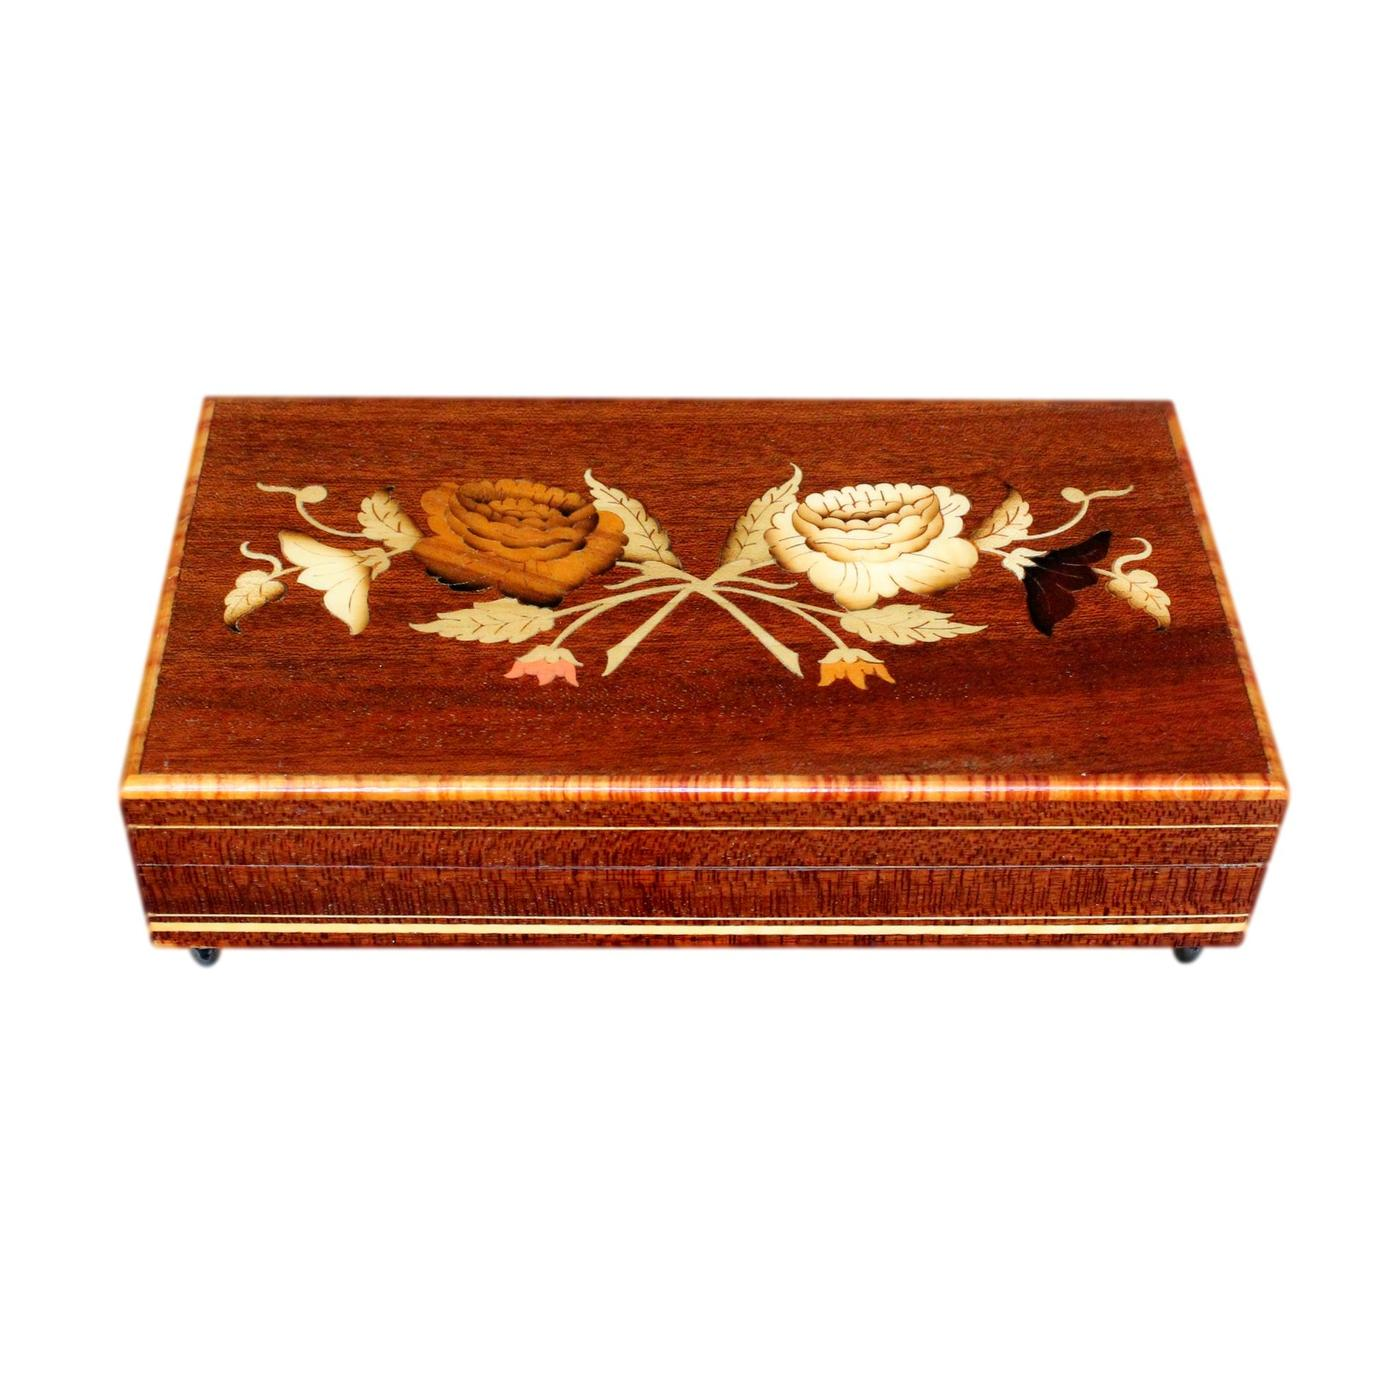 Lovely Vintage Italian Inlaid Musical Jewellery Box